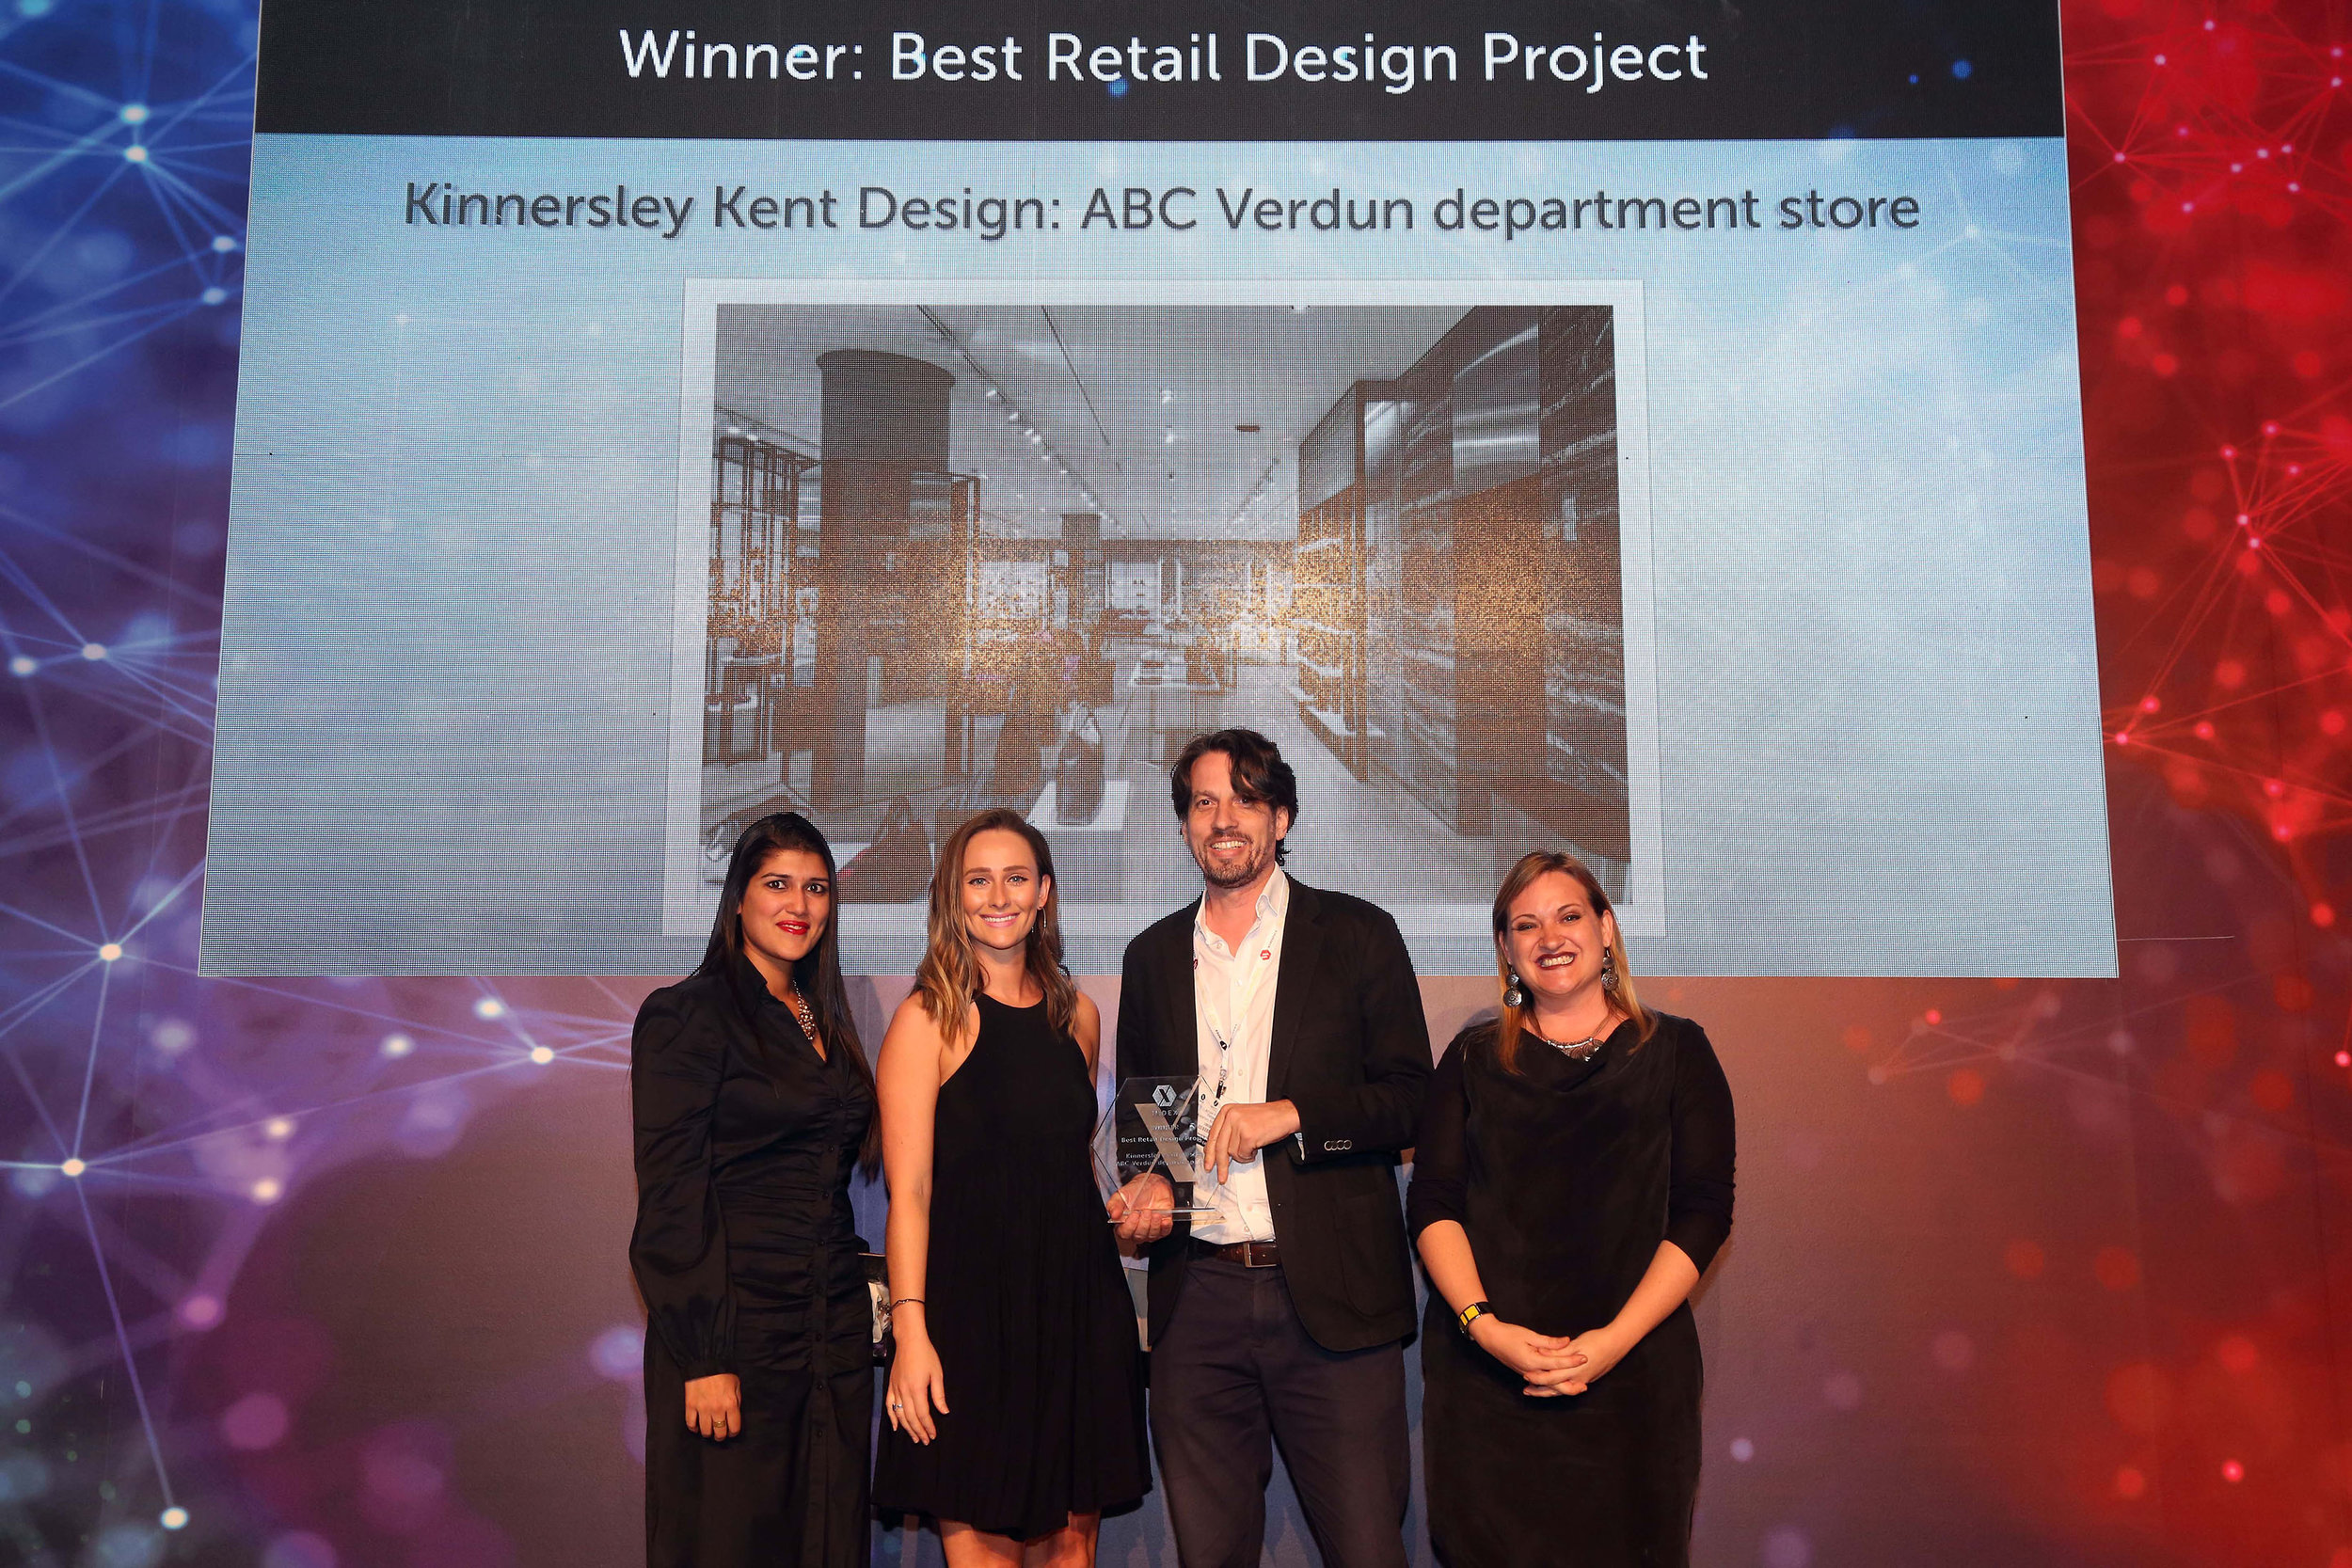 Winners of Best Retail Design Project - Kinnersley Kent Design - ABC Ver....jpg